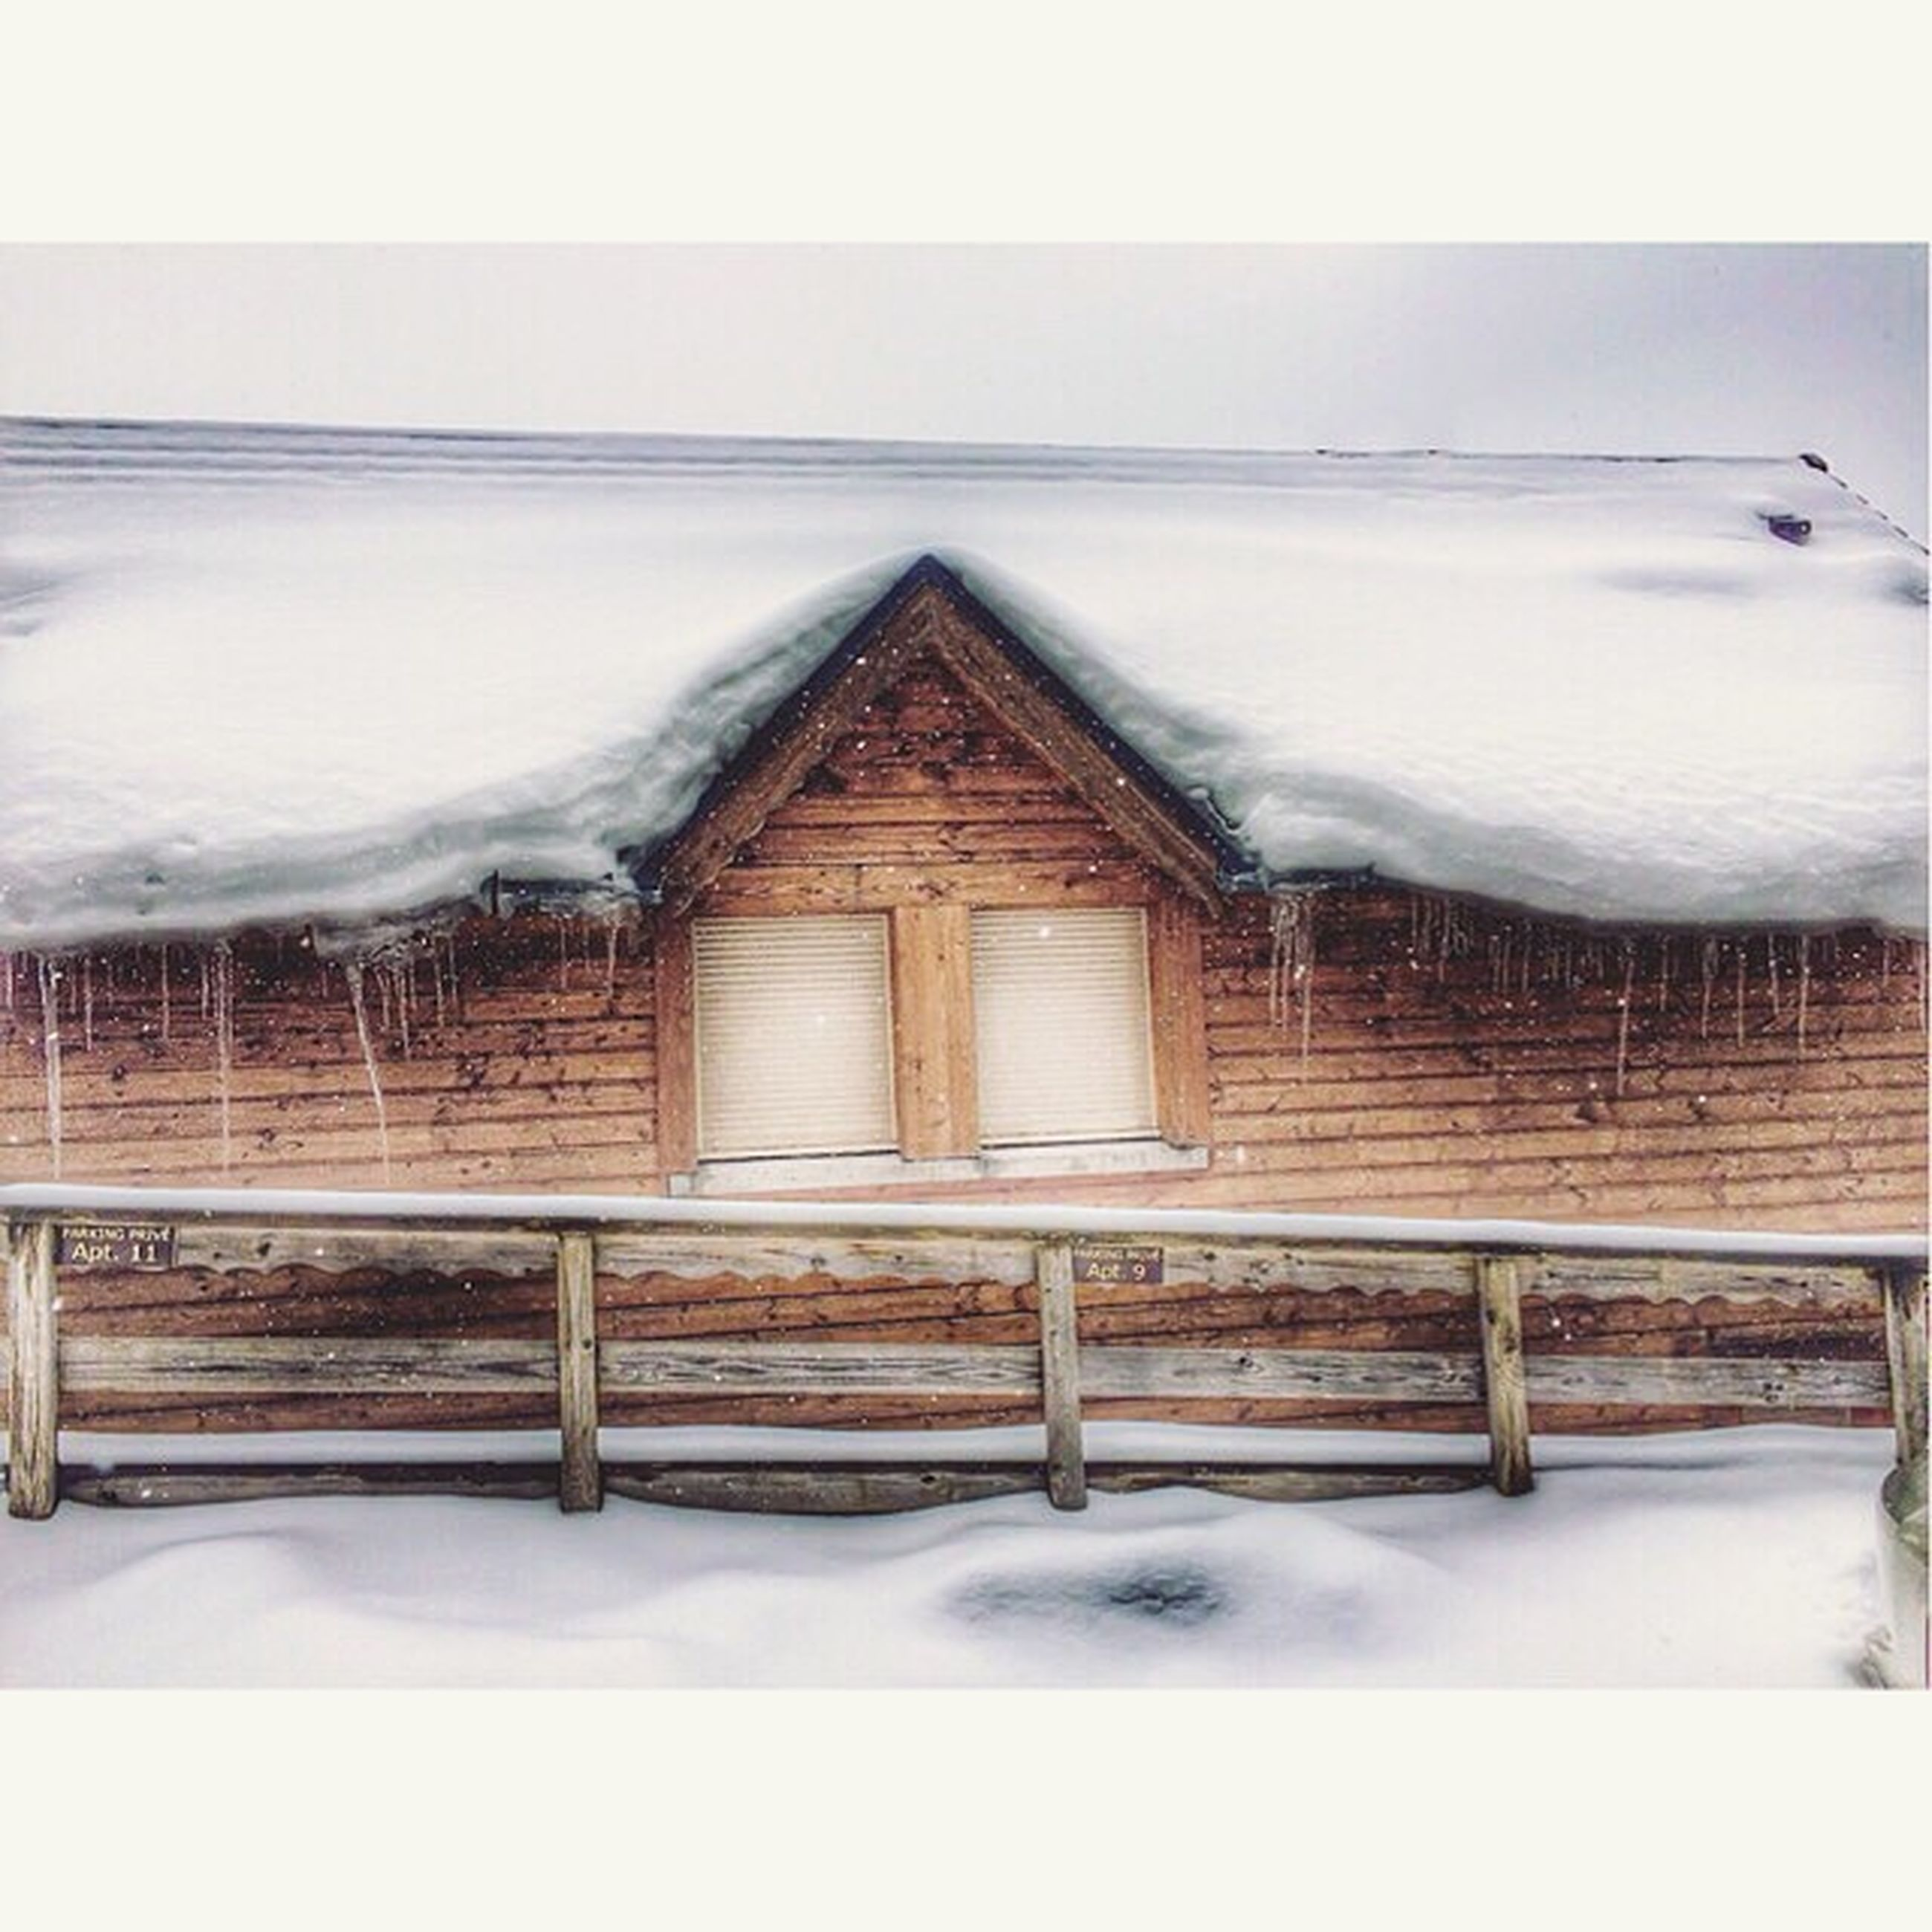 snow, winter, cold temperature, season, weather, covering, white color, built structure, frozen, architecture, house, wood - material, covered, building exterior, nature, white, day, landscape, field, transfer print